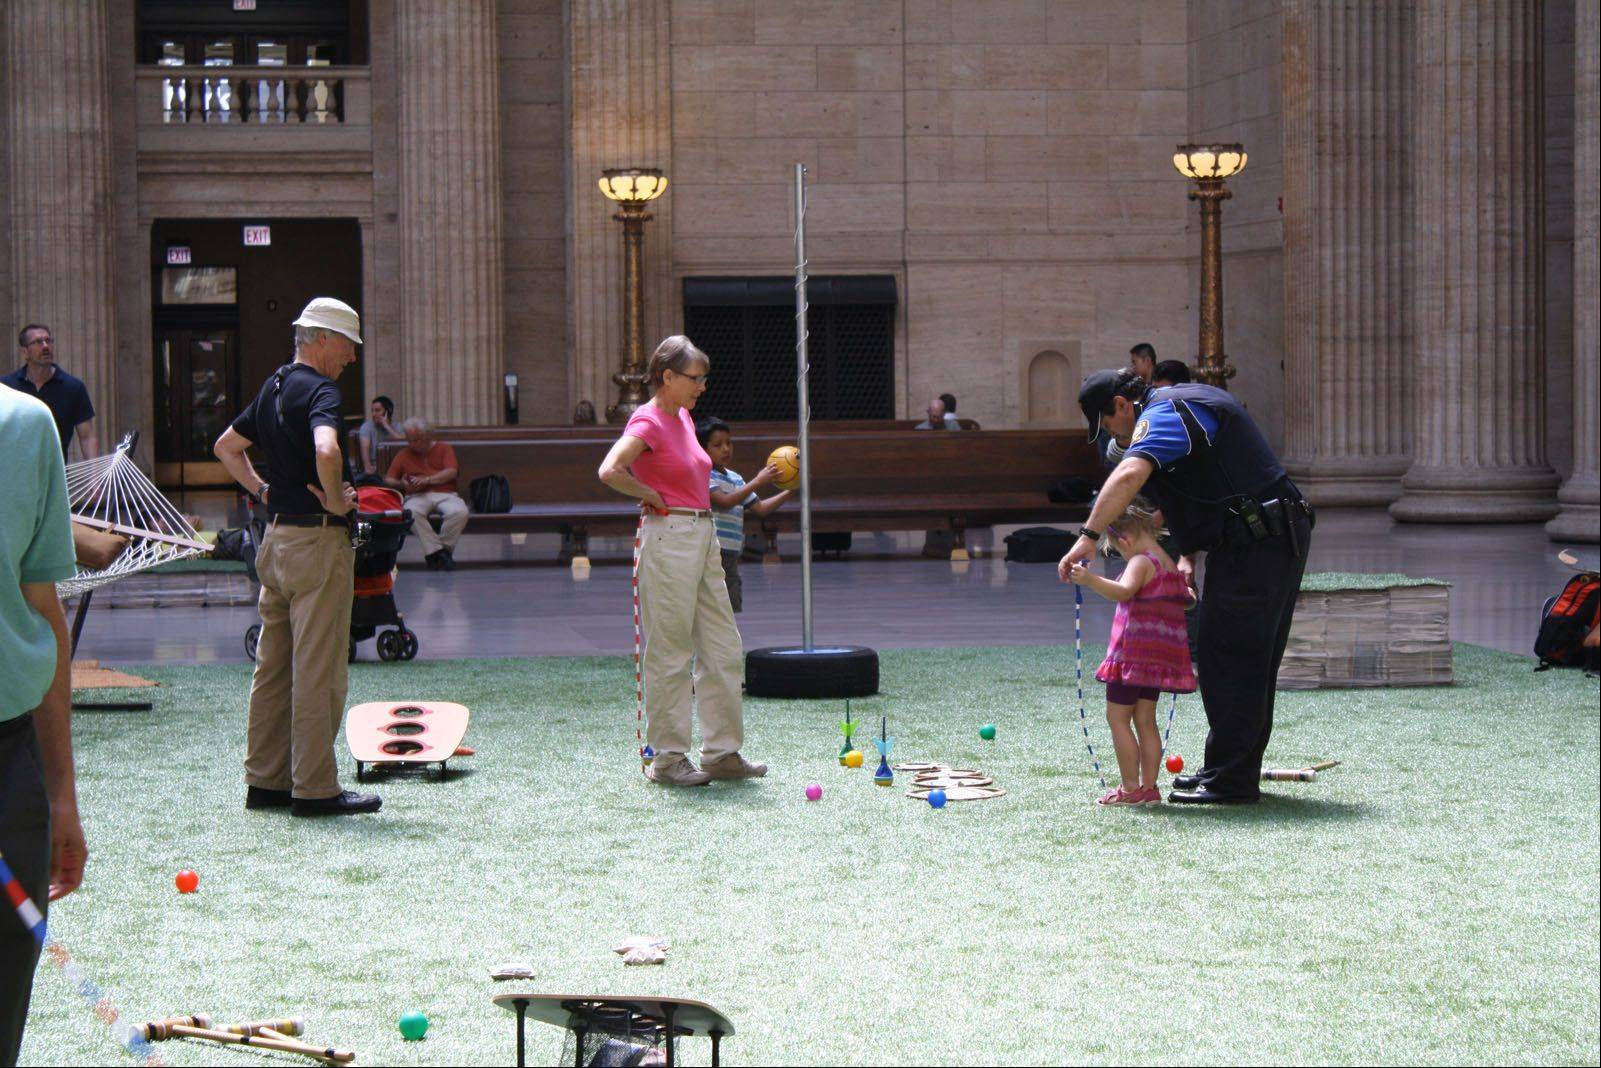 People play backyard games in the Great Hall of Union Station, part of a winning design created by Buffalo Grove native Corey Nissenberg's team for a Chicago competition.